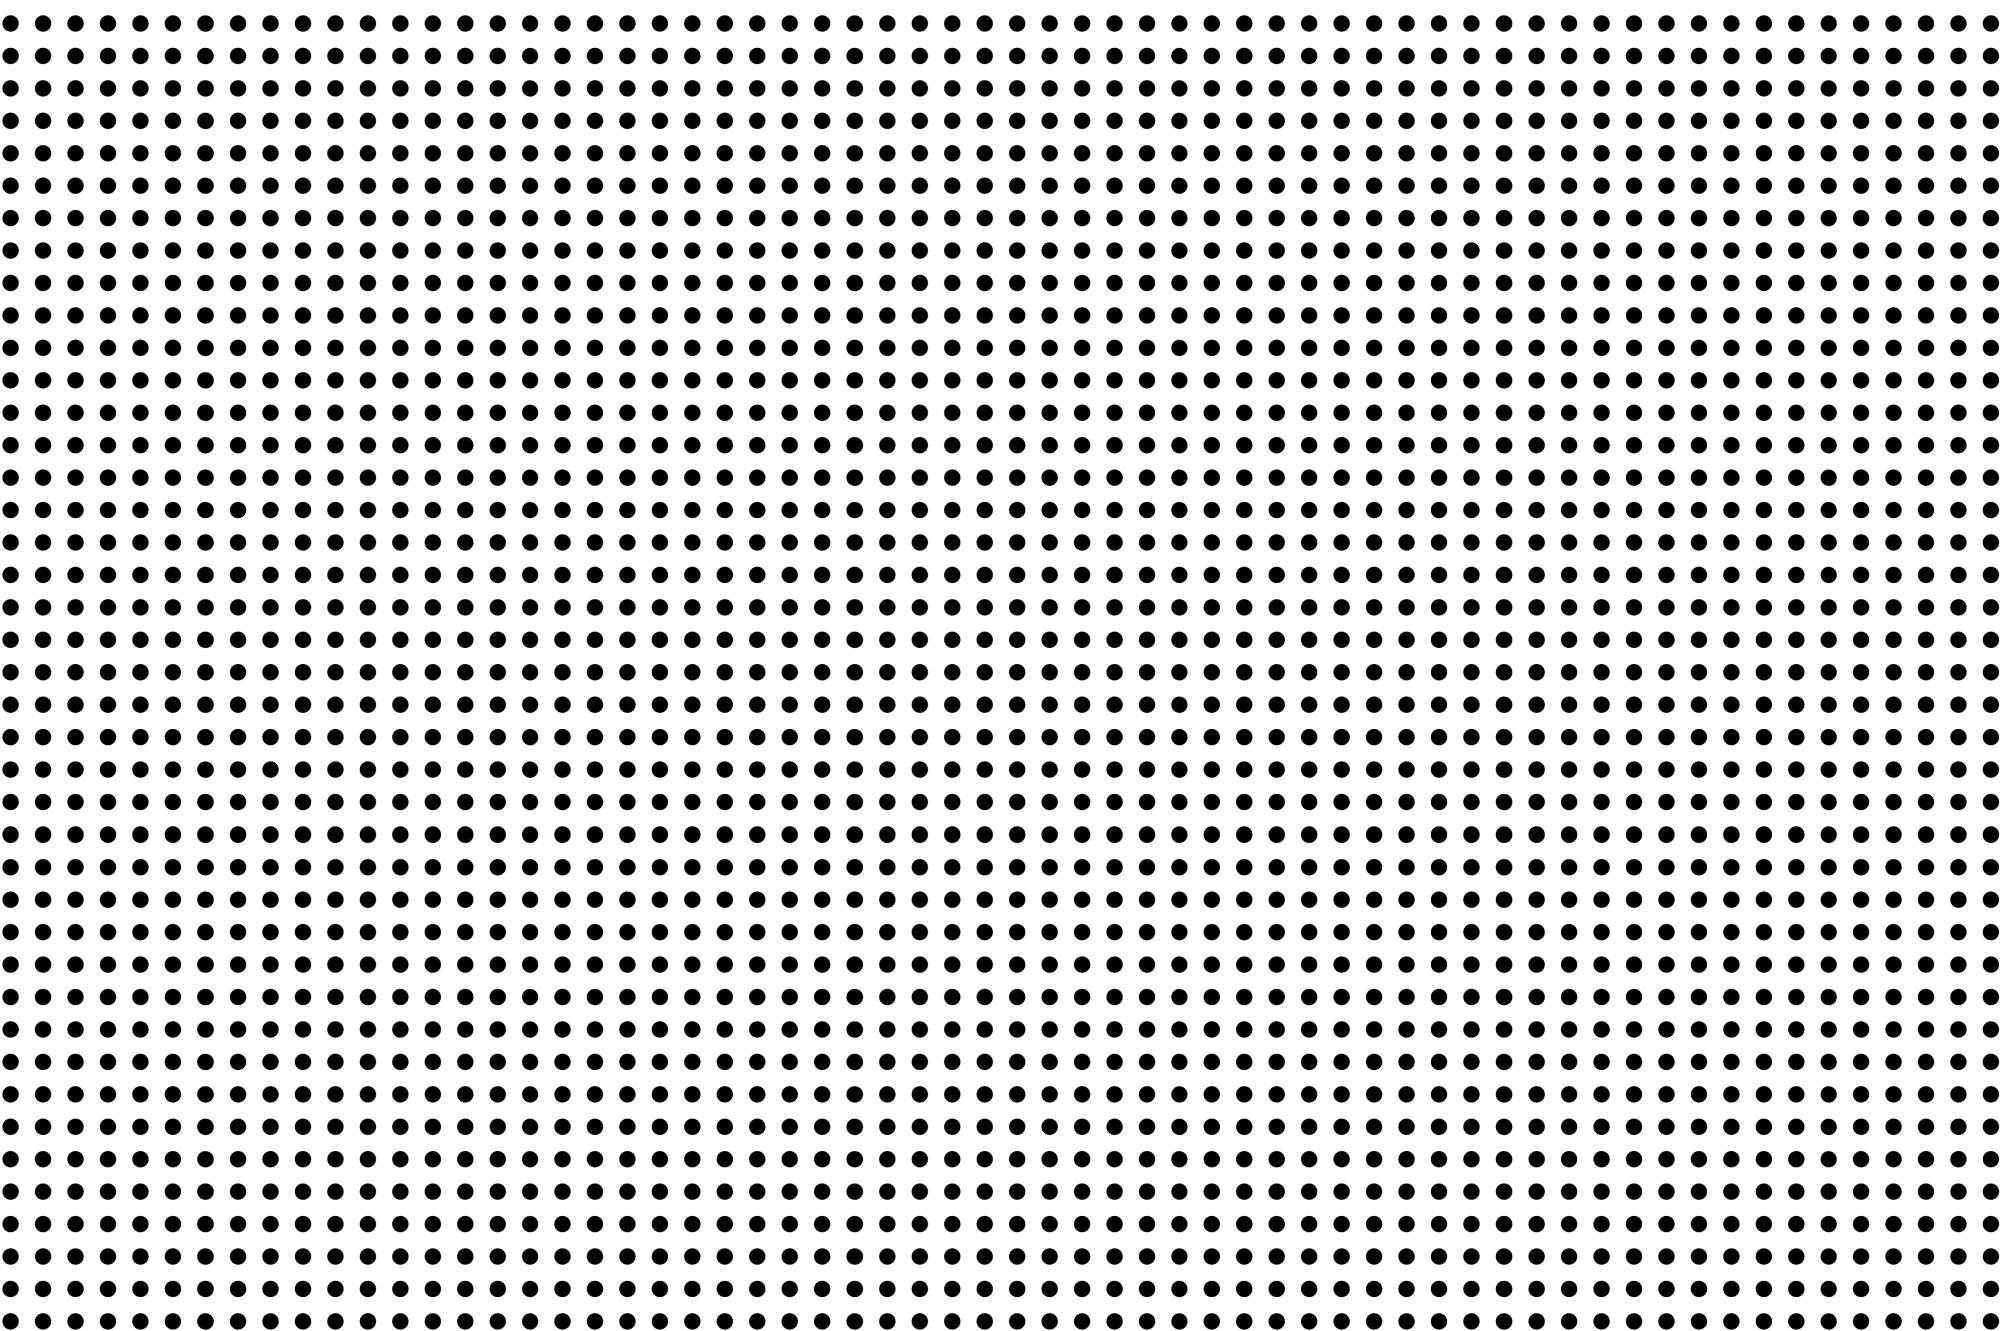 Set of dotted seamless patterns. example image 14